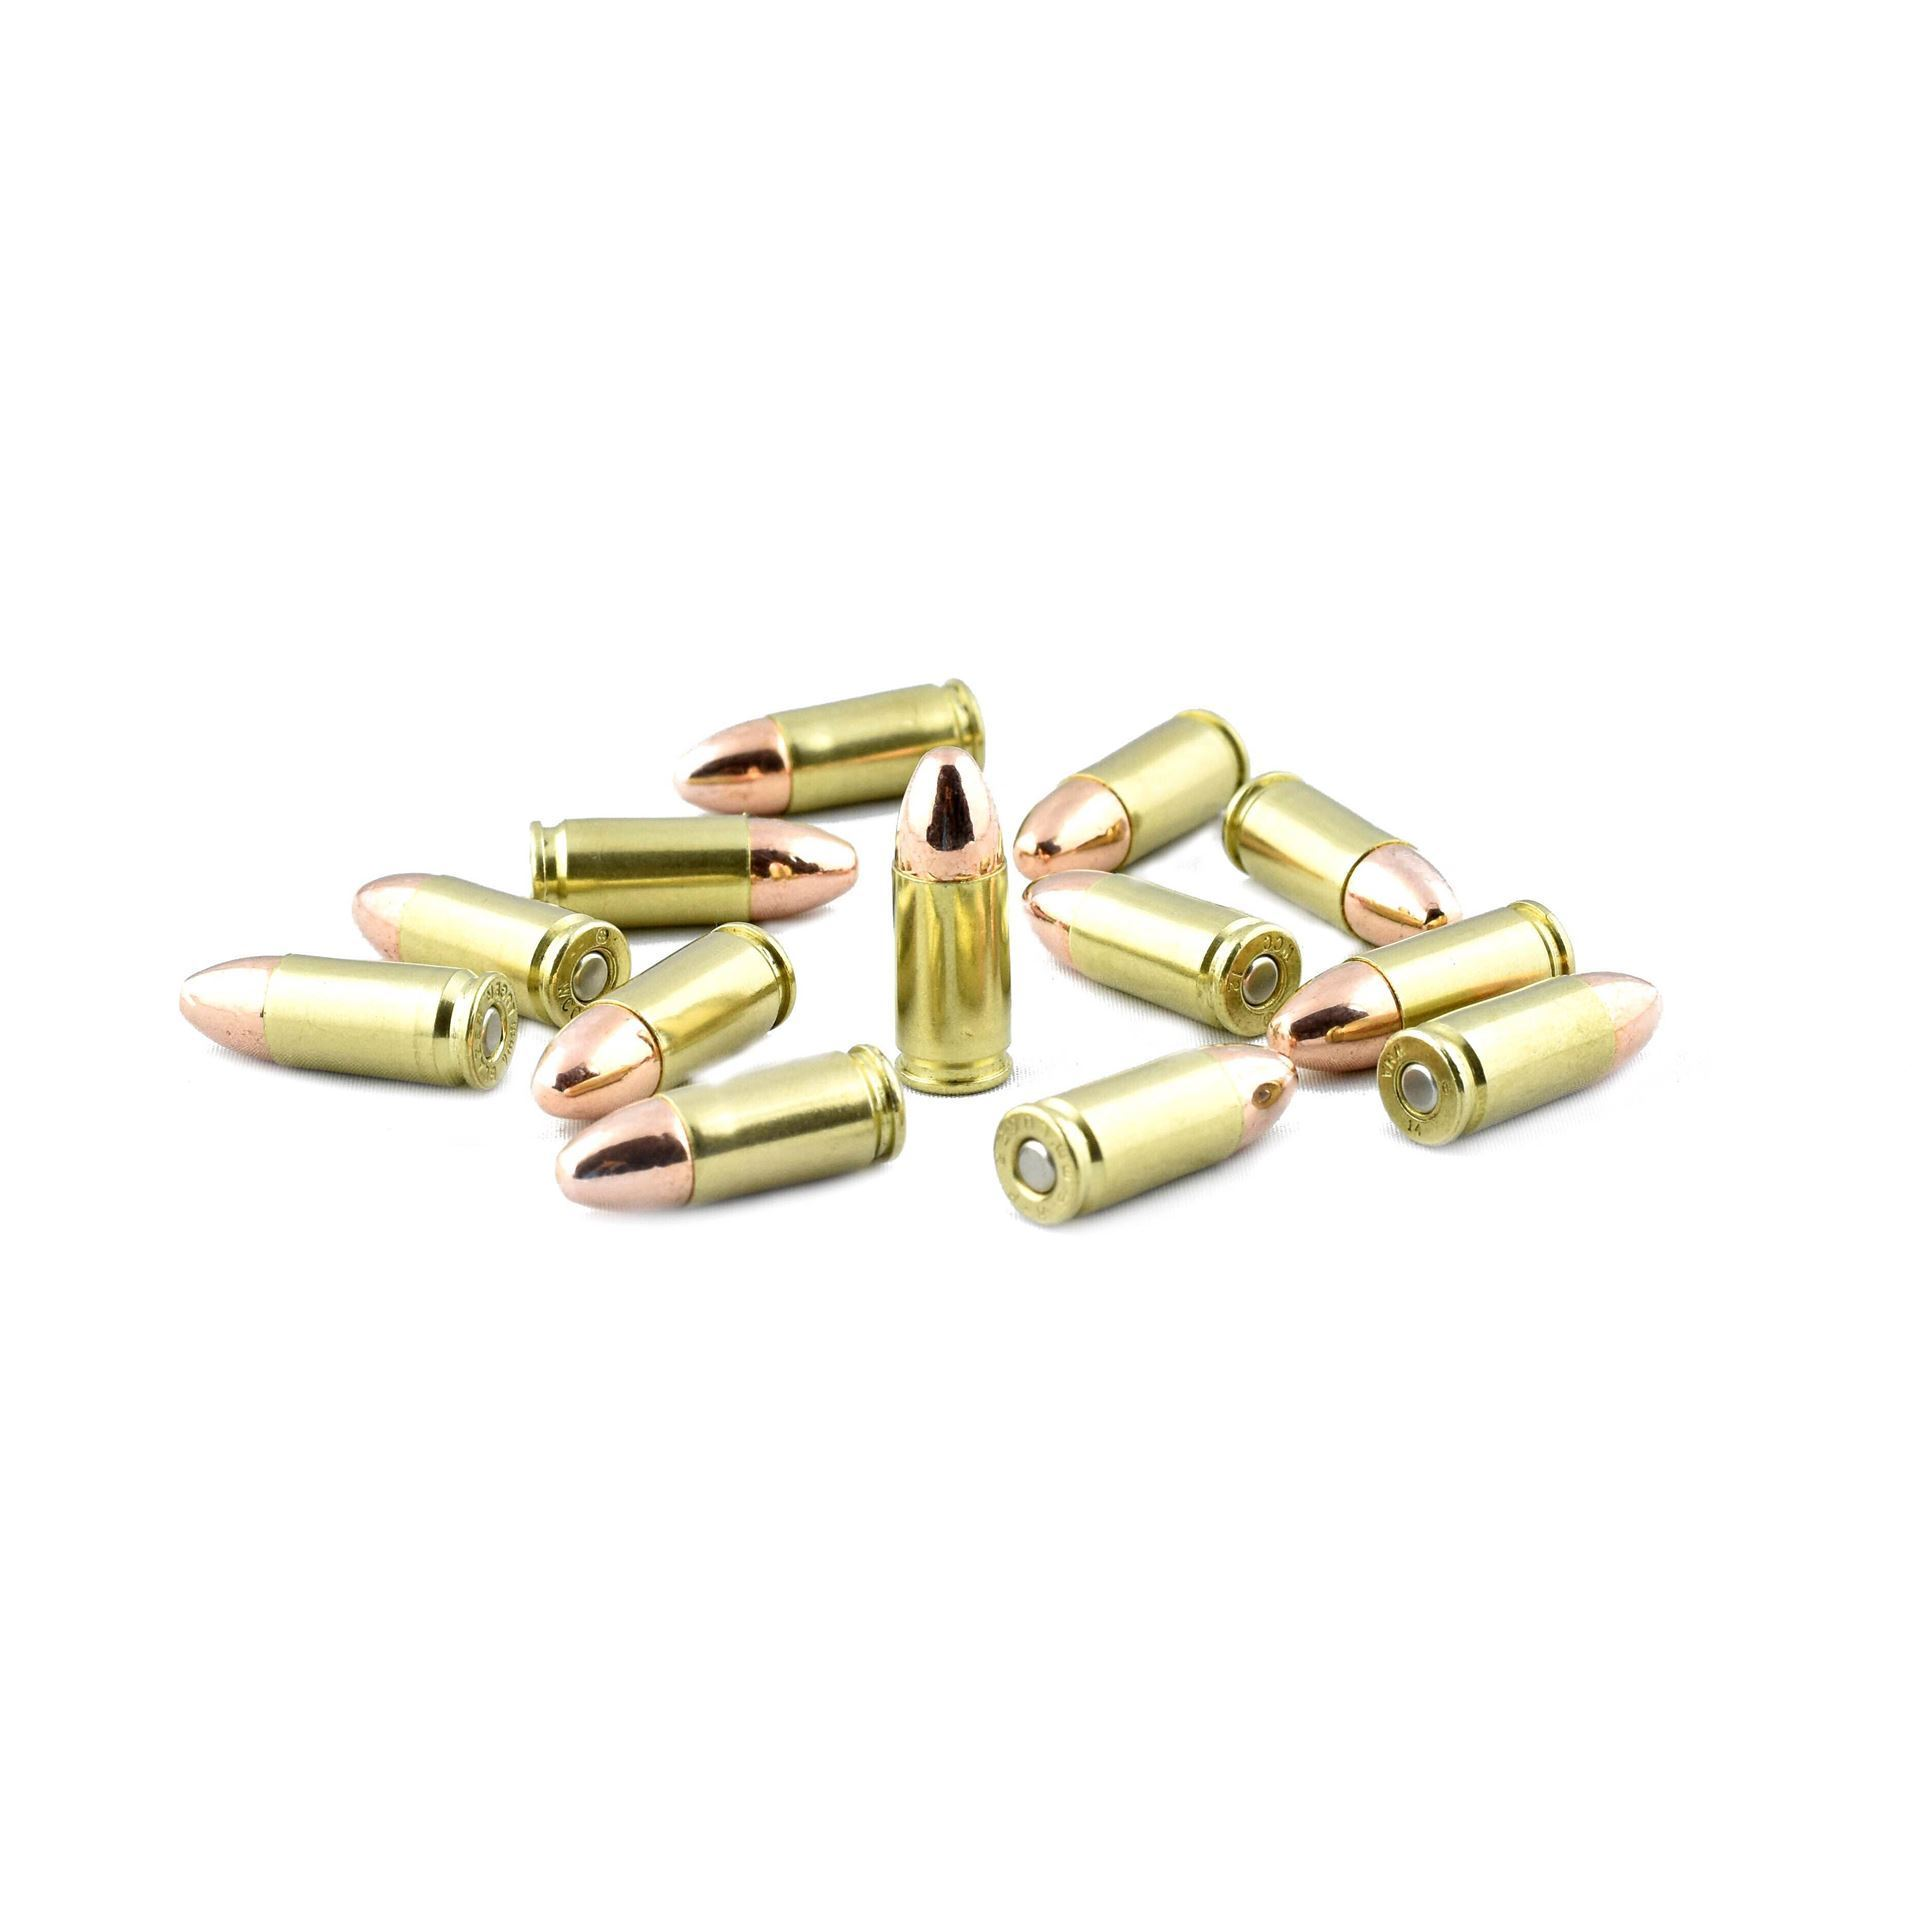 9mm 124gr. & 115gr.Bulk In Stock NOW !